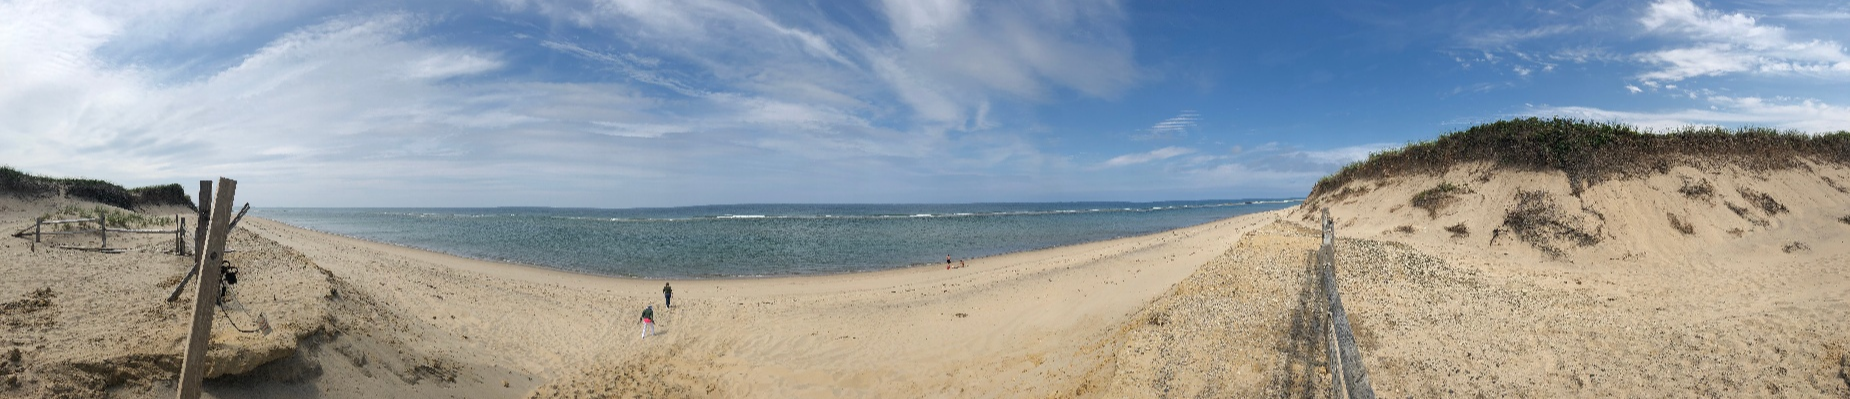 panoramic view of a beach and ocean